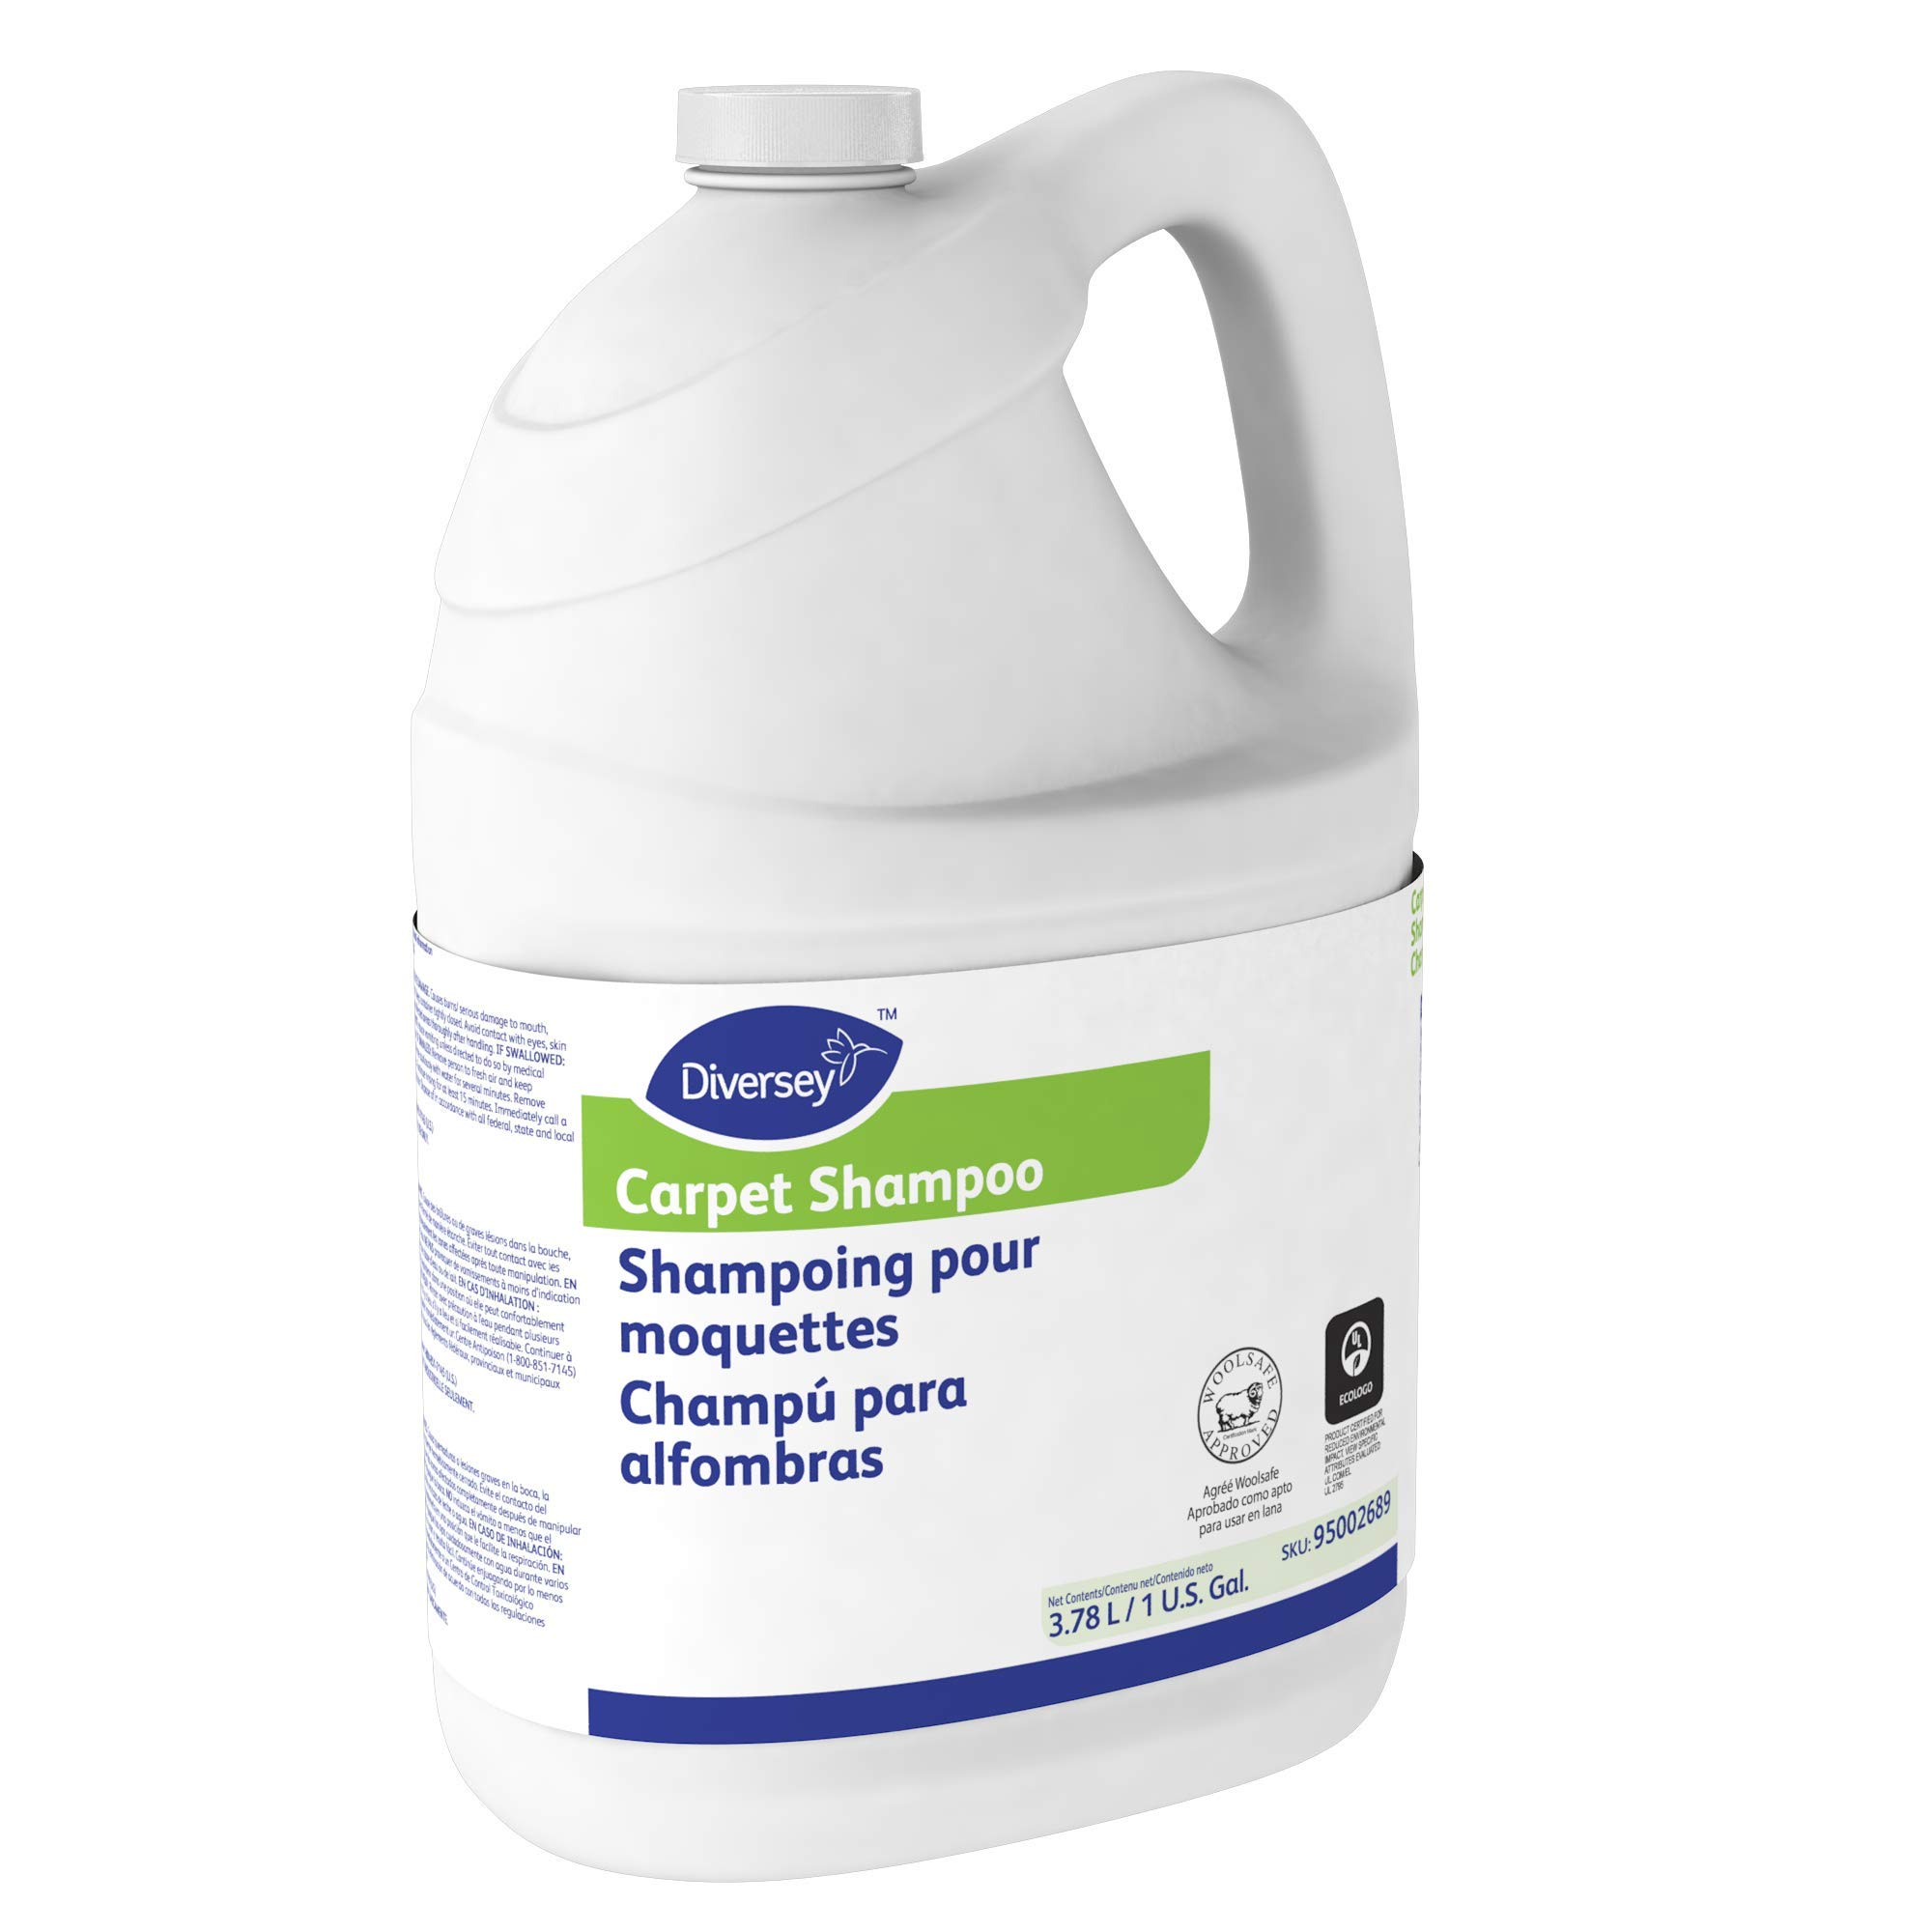 Diversey Carpet Shampoo (1-Gallon, 4-Pack) by Diversey (Image #4)